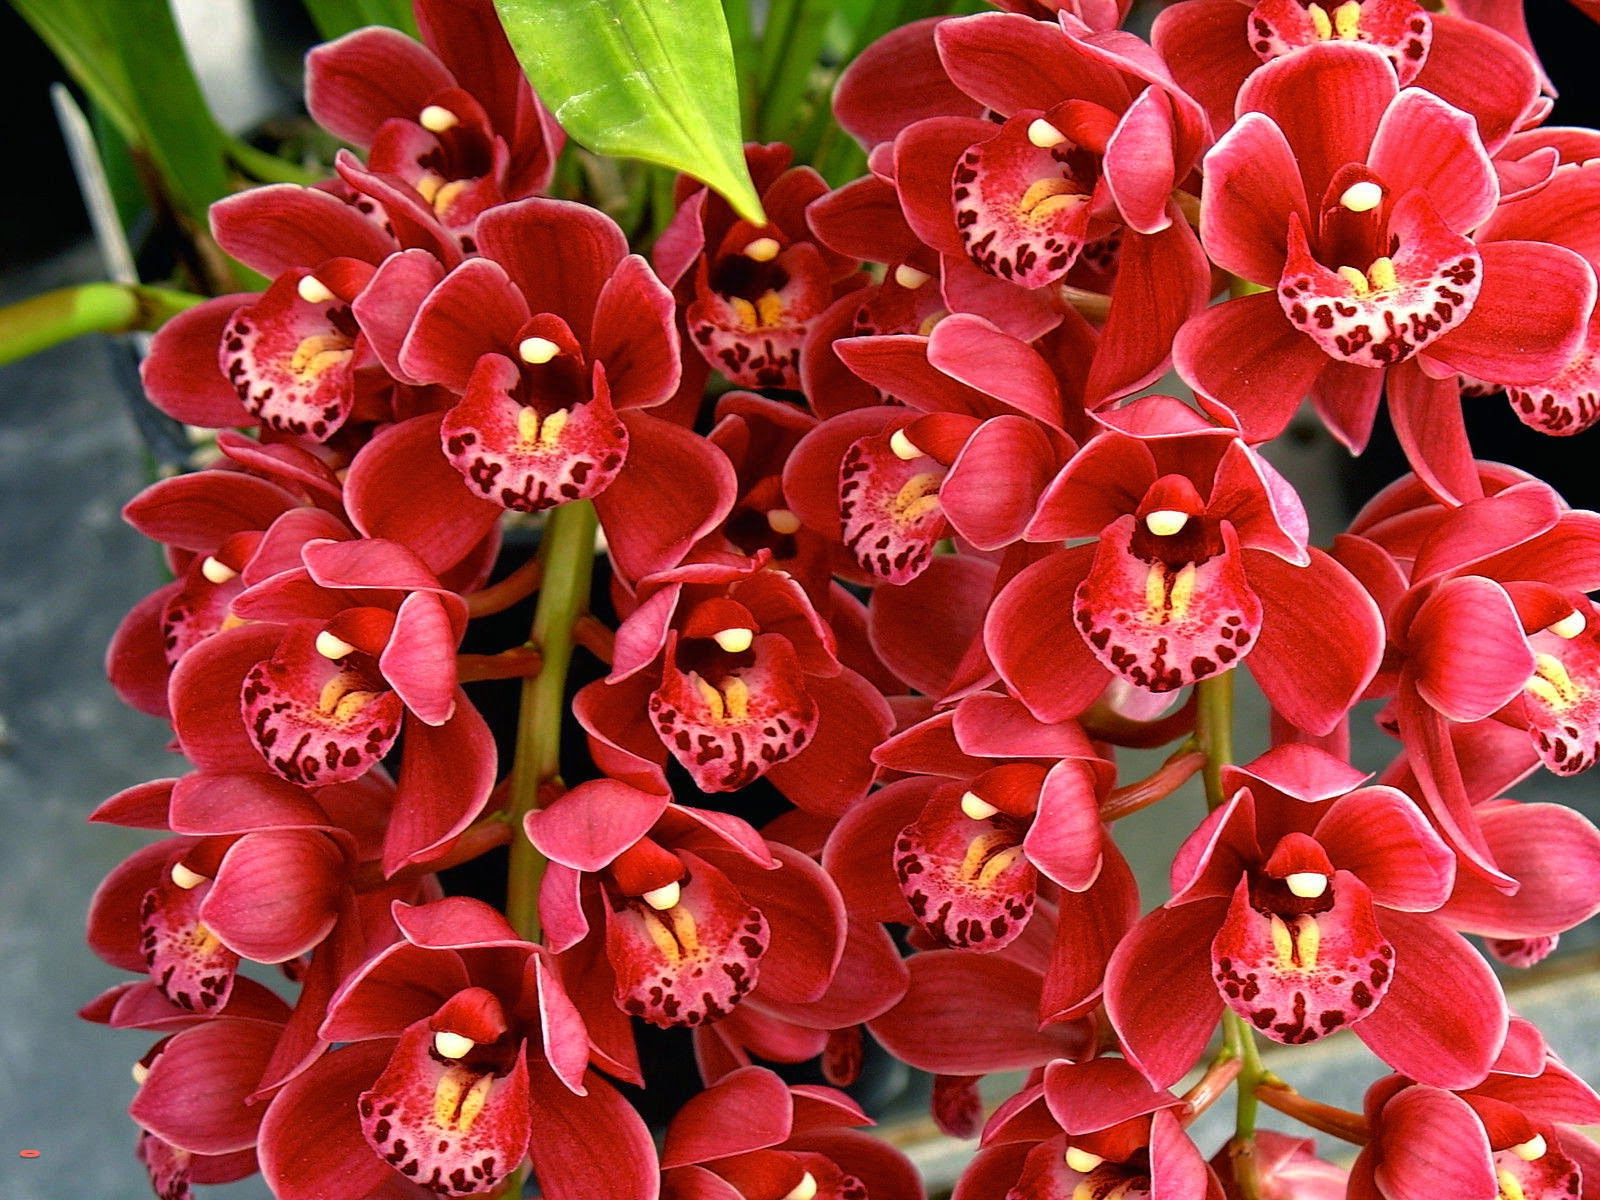 Cymbidium Orchids New Flowering Season in addition Whats Your Birth Orchid in addition  further Pro further Brassia Miltassia Royal Robe. on cymbidium orchids are blooming